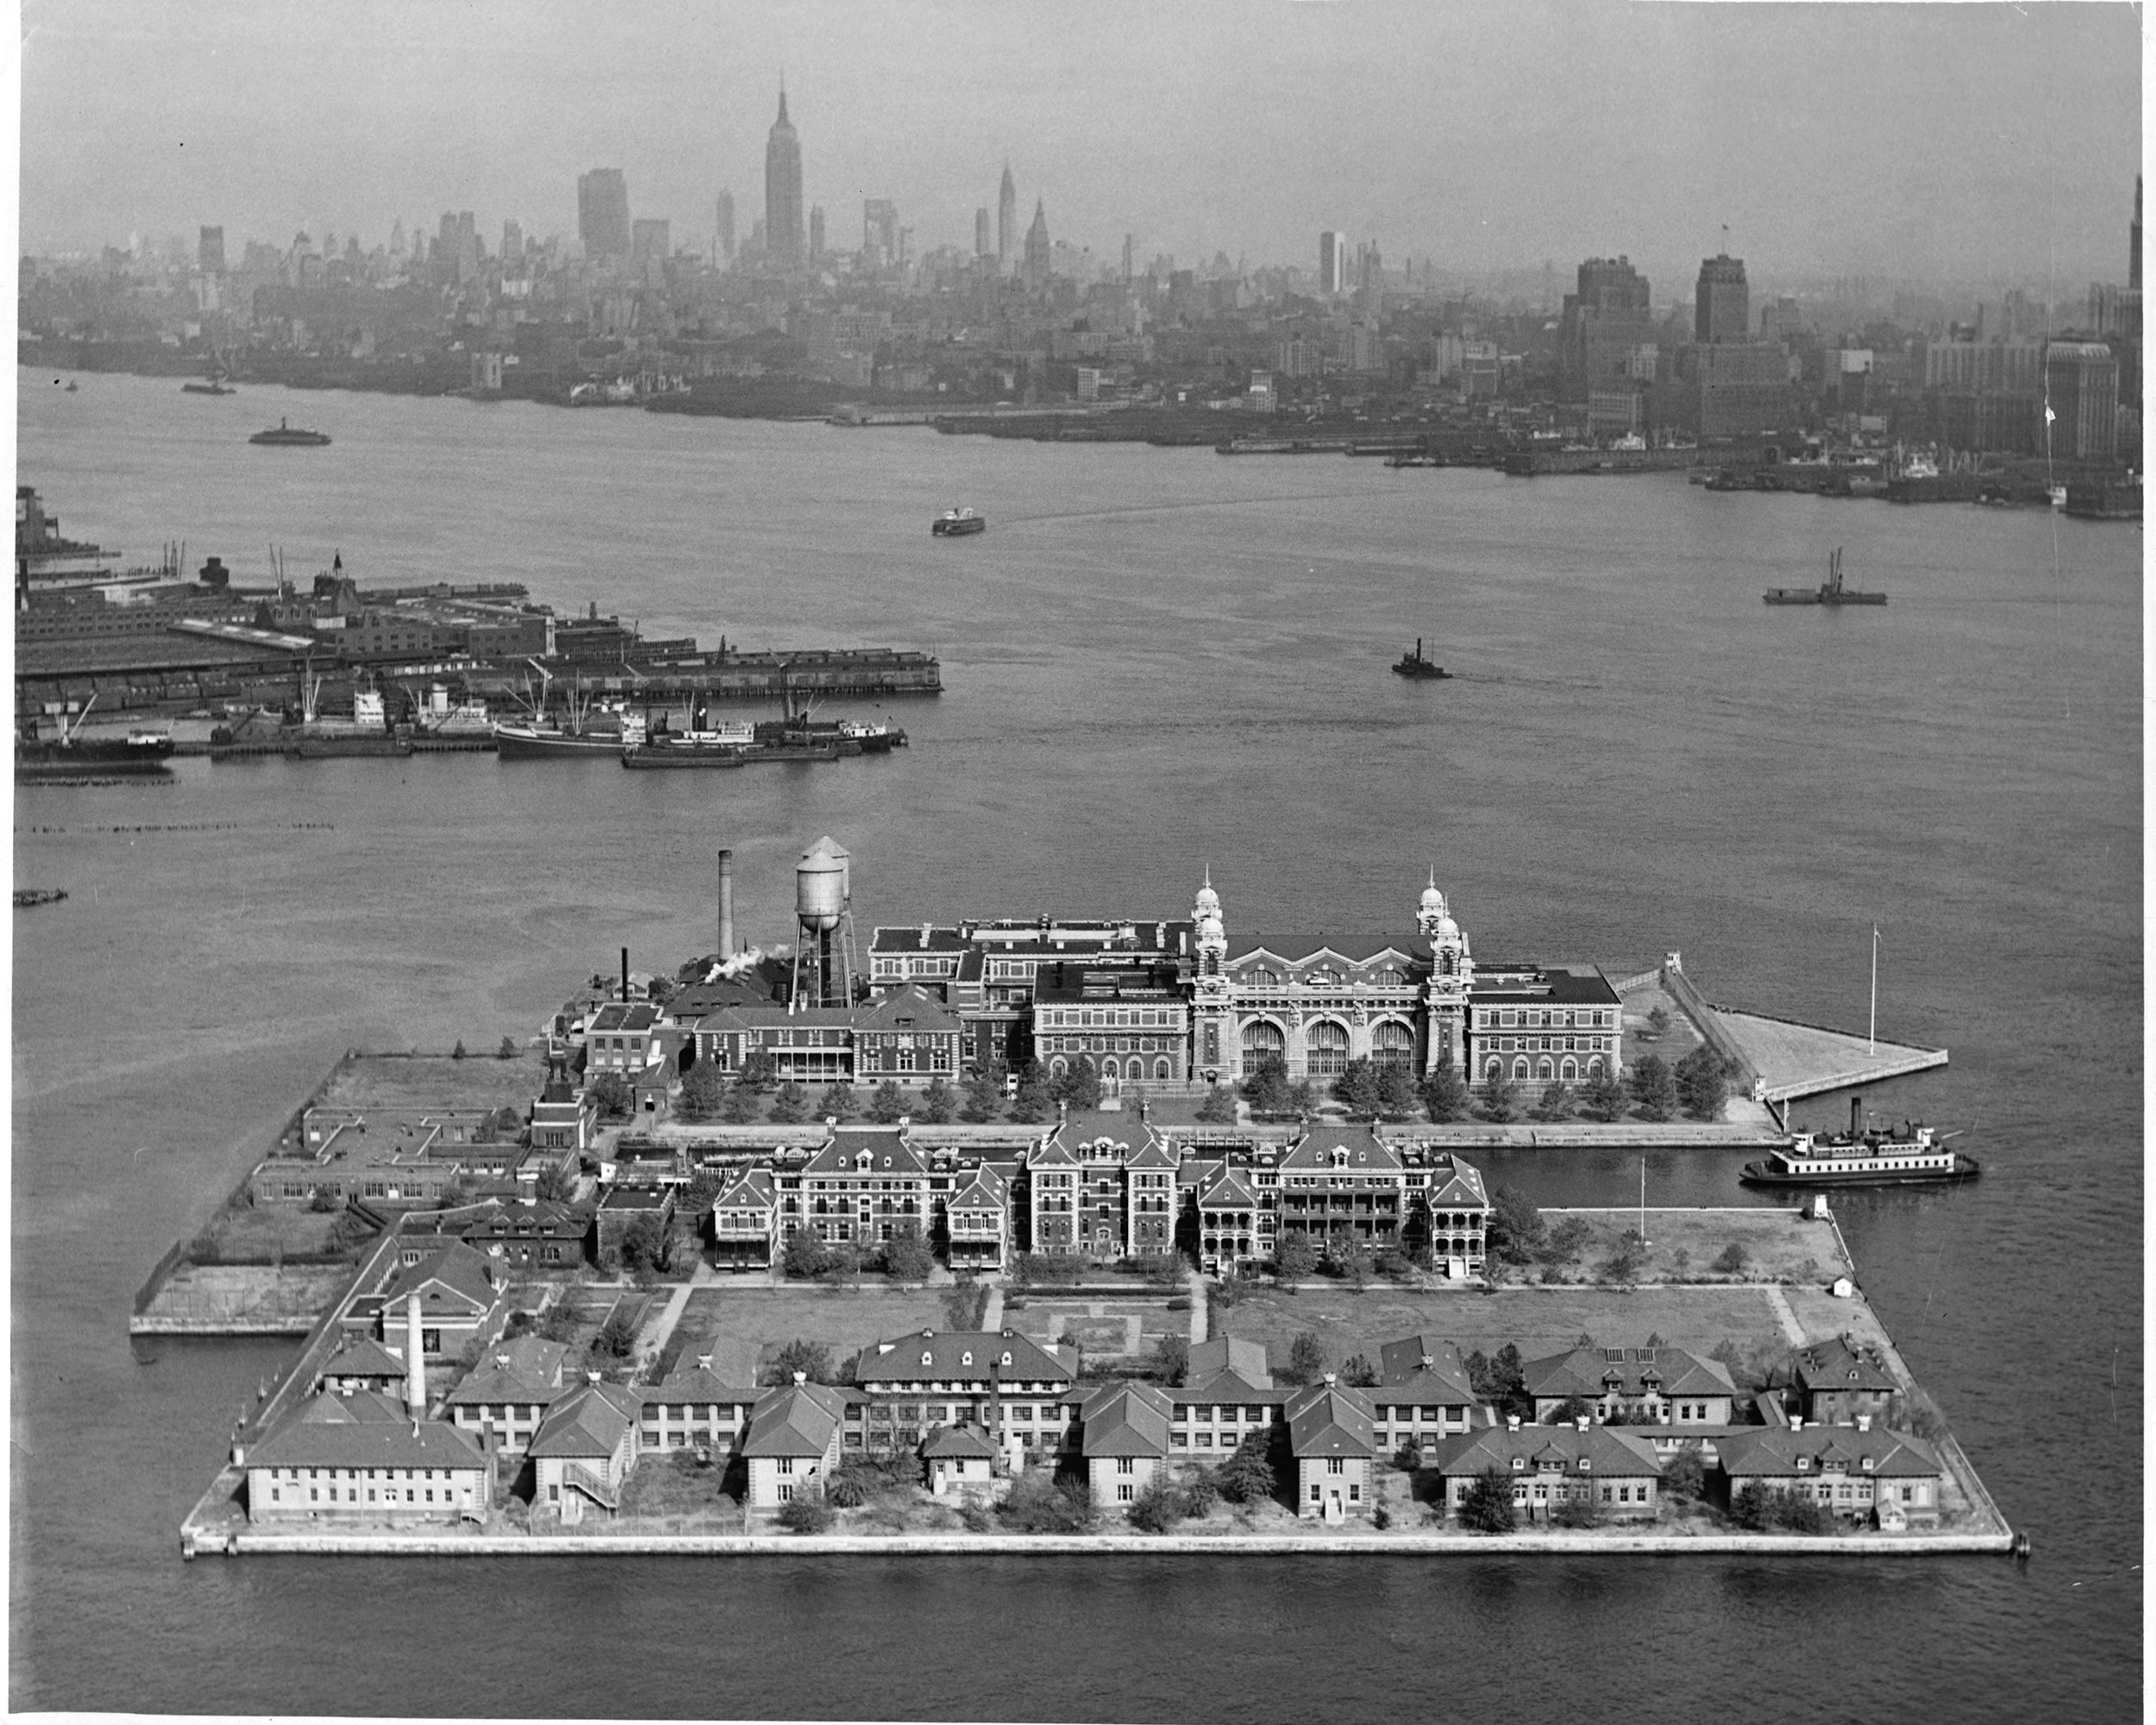 Slide 10 of 31: A 1955 aerial view of Ellis Island may be most astounding due to the much smaller Manhattan skyline, but that's not all worth noting. Over the course of its history, beginning in 1892, around 12 million immigrants passed through this renowned immigration station.